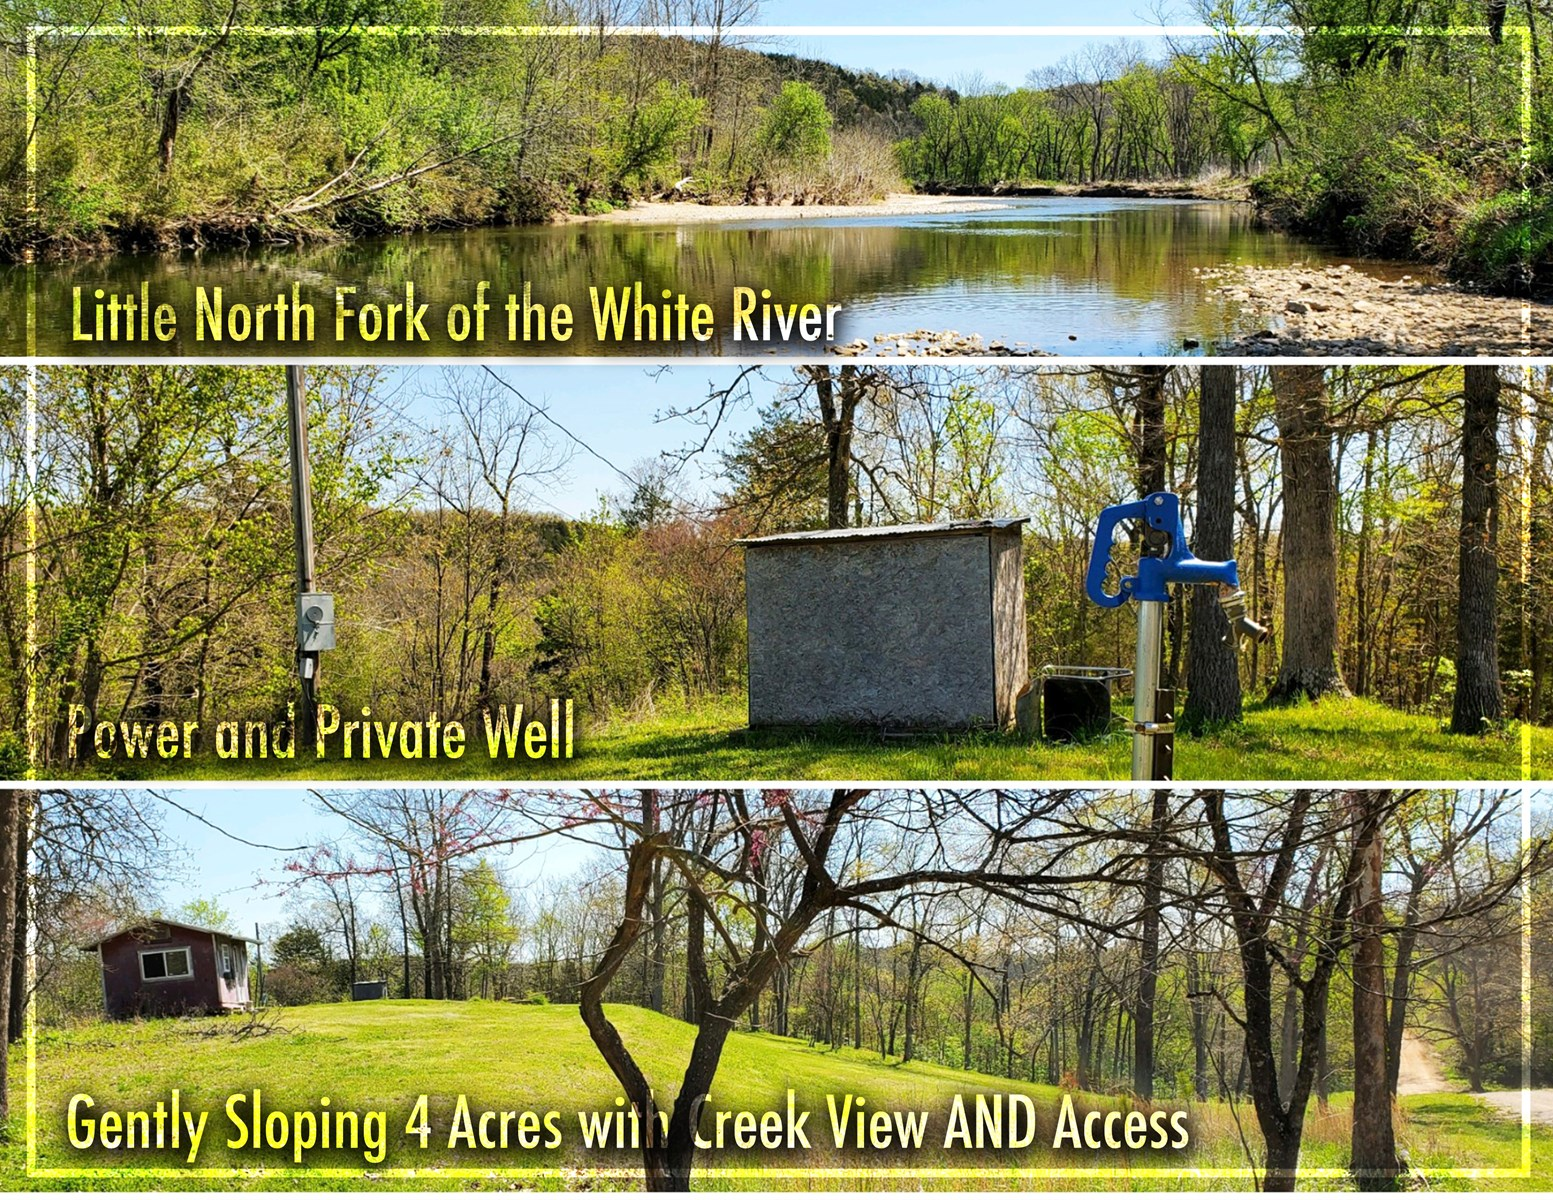 Beautiful Land Tract for Sale in Southern Missouri Ozarks